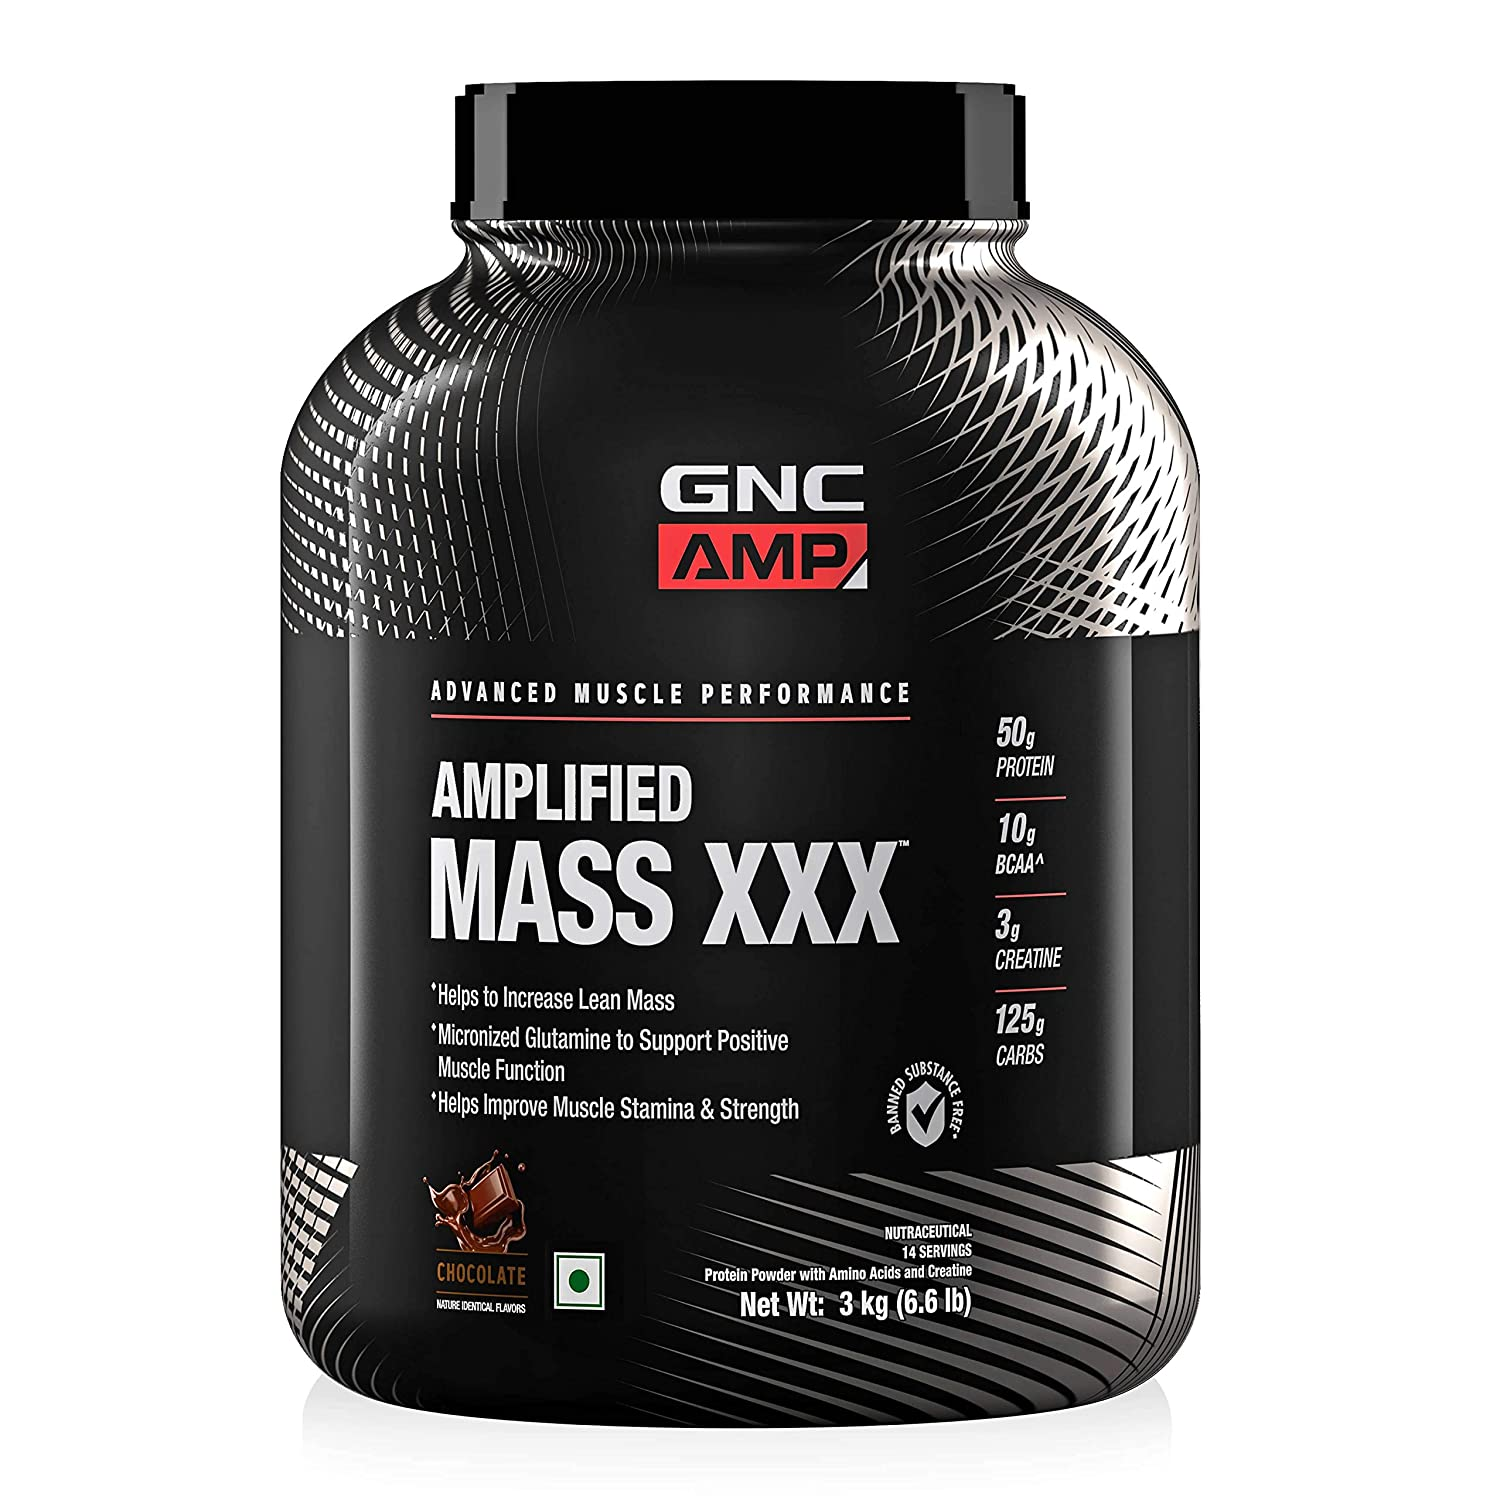 GNC AMP Amplified Mass XXX Review